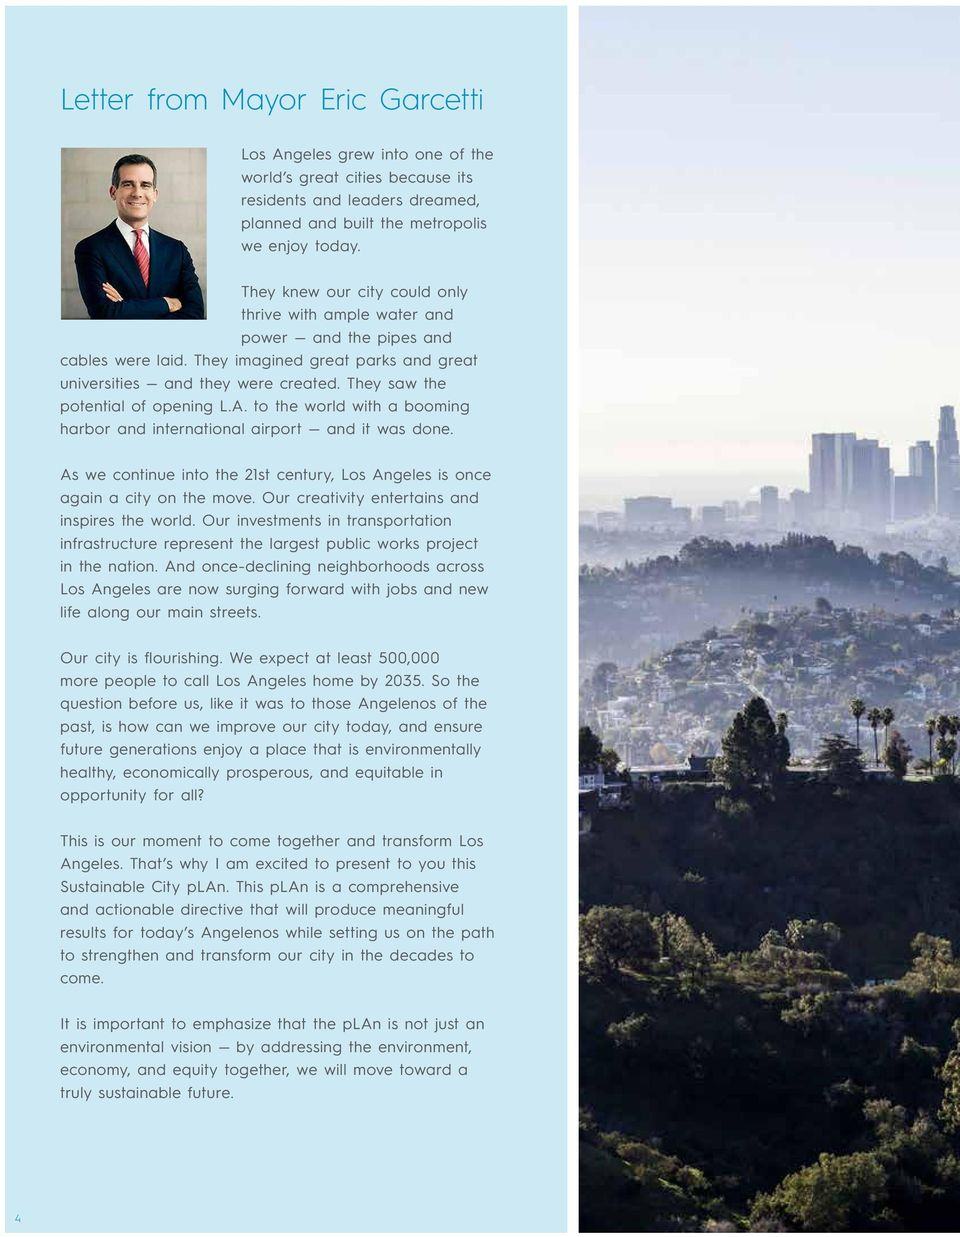 They saw the potential of opening L.A. to the world with a booming harbor and international airport and it was done. As we continue into the 21st century, Los Angeles is once again a city on the move.